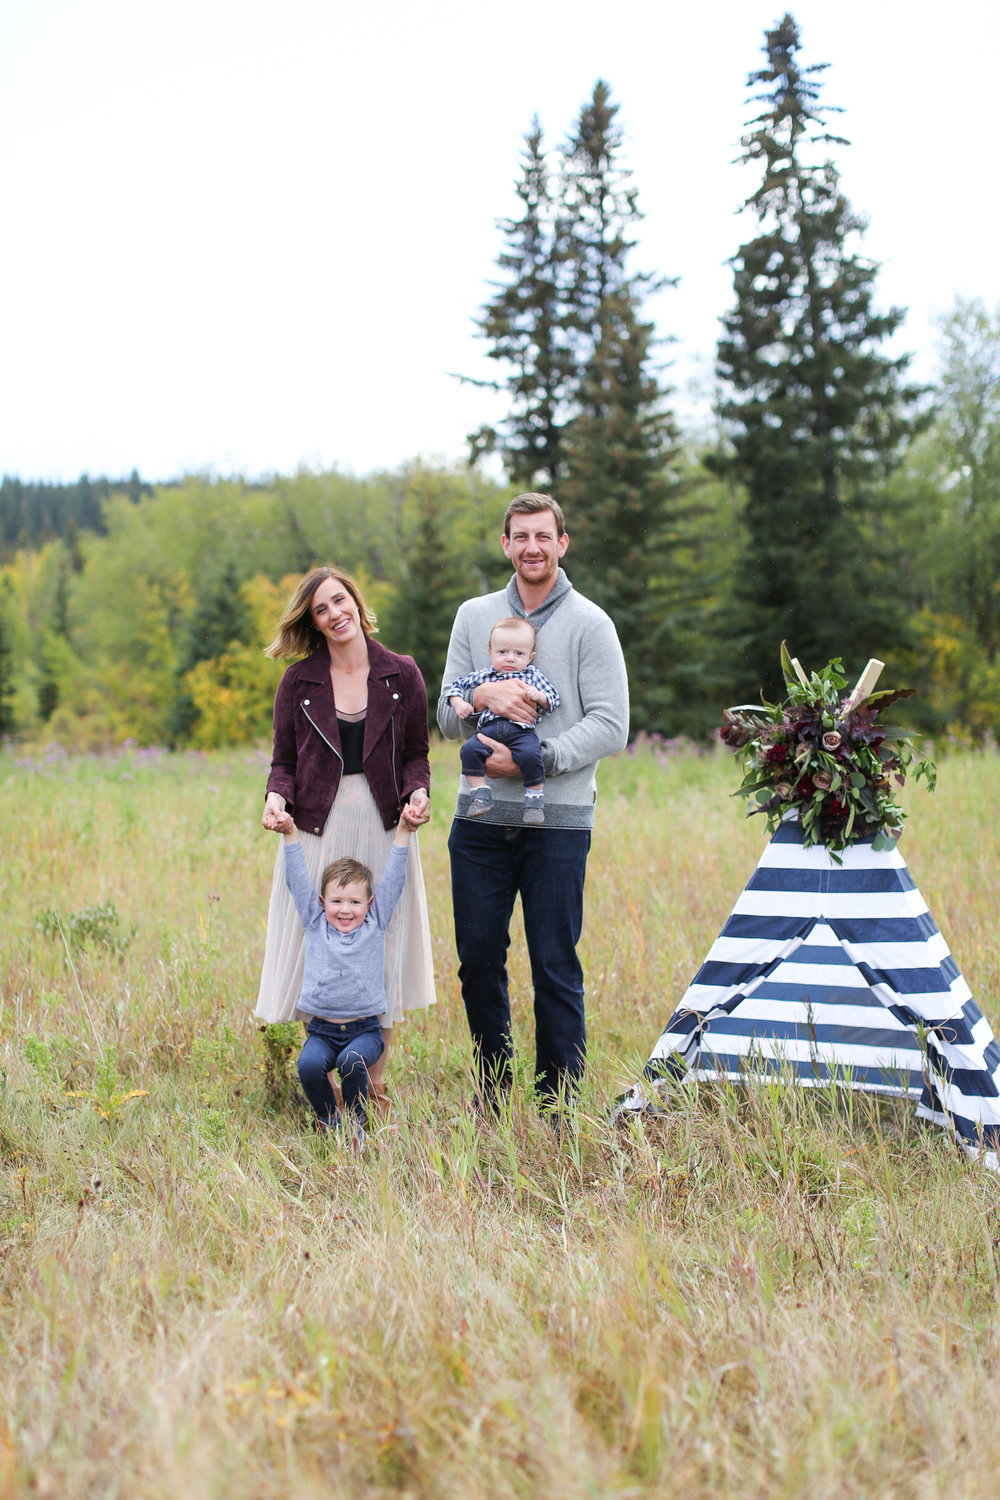 Fall-Family-Creative-Lindsay_Skeans_Photography-16.jpg